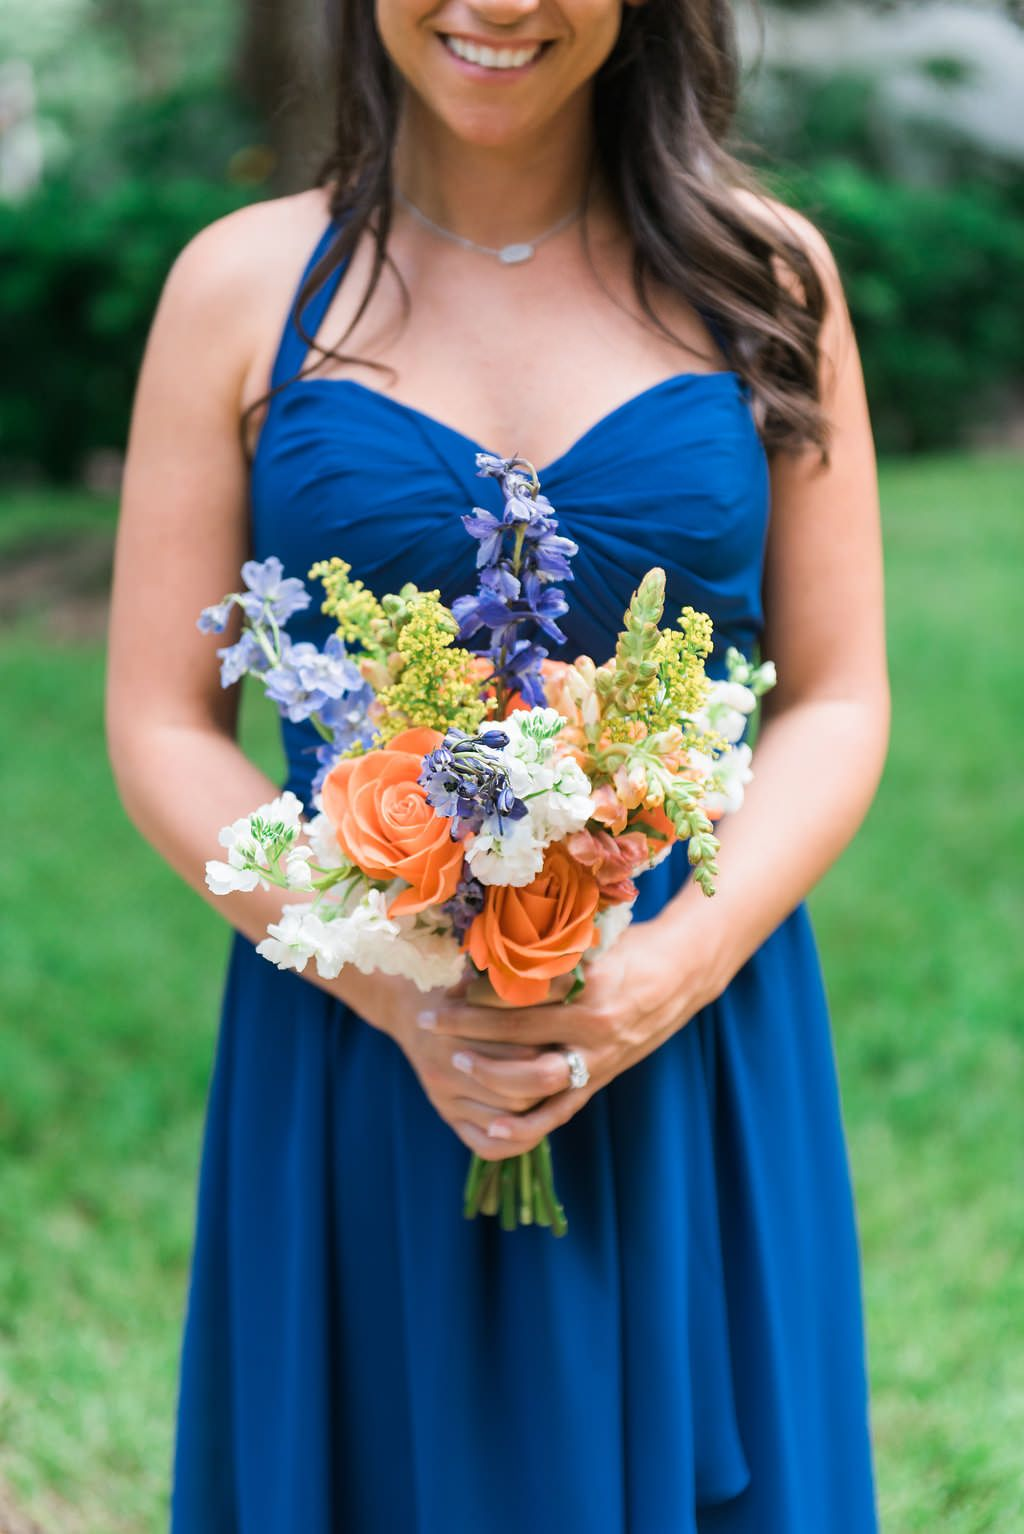 Bold blue sweetheart bridesmaid dresses with orange and blue bold blue sweetheart bridesmaid dresses with orange and blue wedding bouquet ombrellifo Gallery